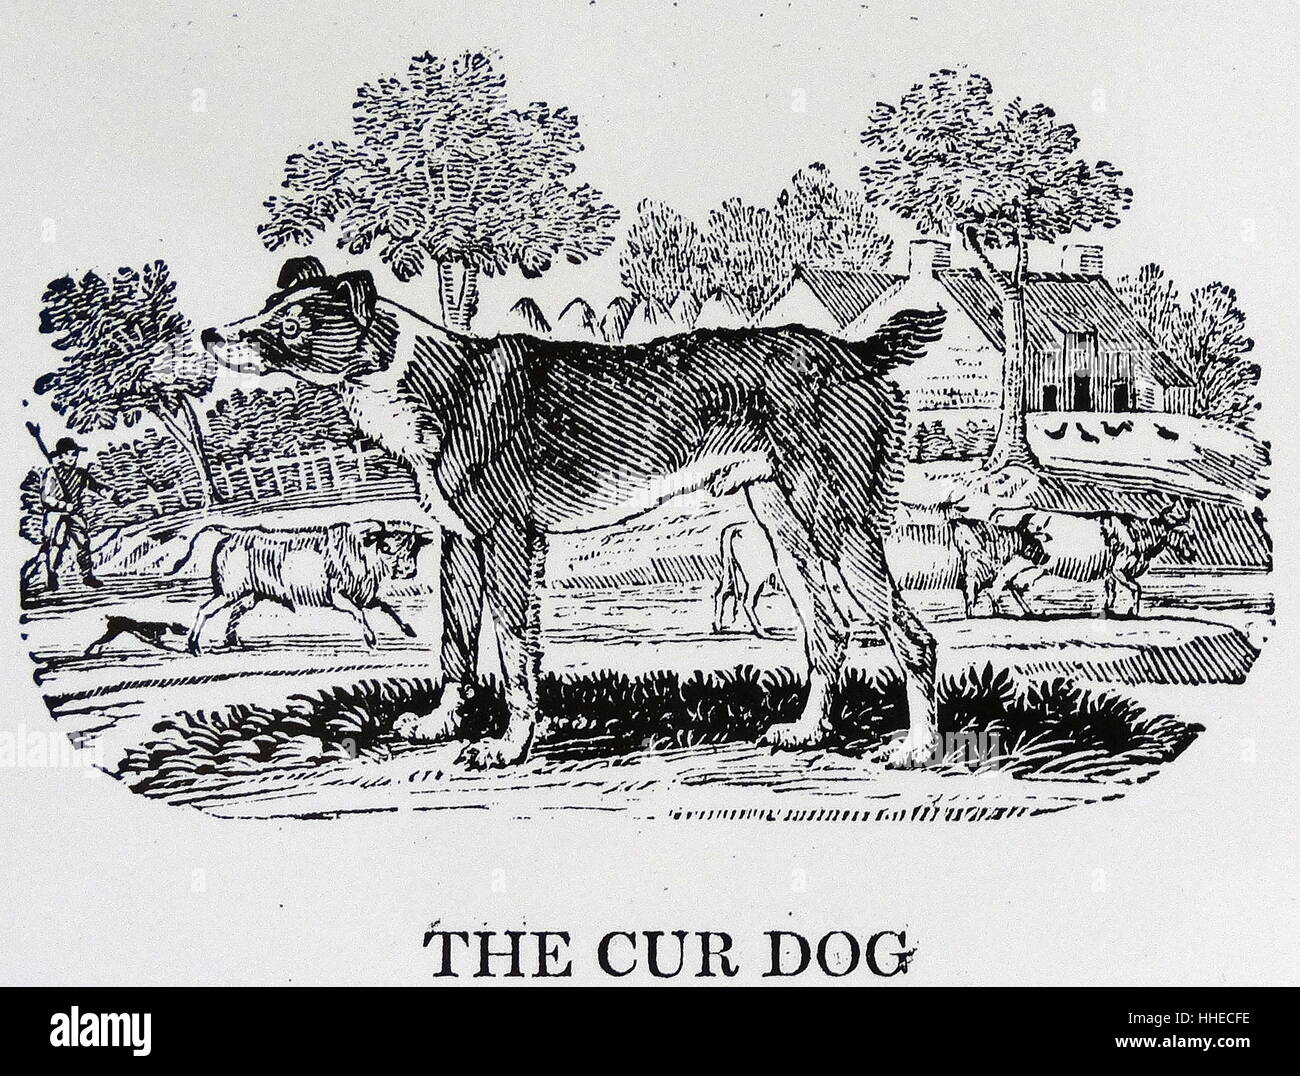 A Cur Dog. From Thomas Bewick A General History of Quadrupeds, Newcastle upon Tyne, 1790. - Stock Image